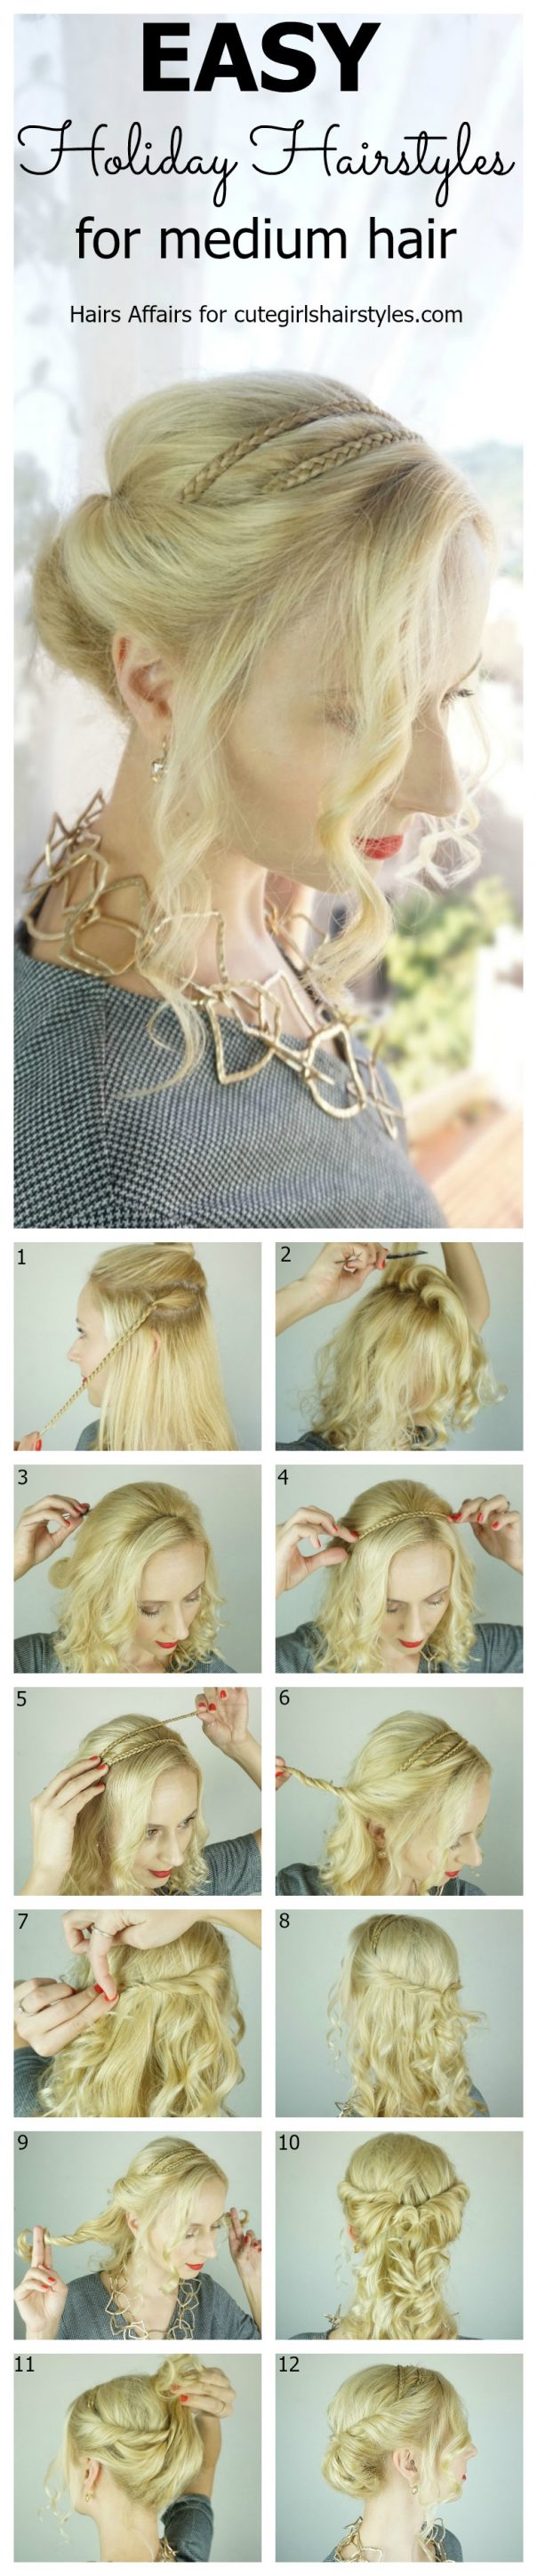 Holiday Hairstyles | CGH Lifestyle